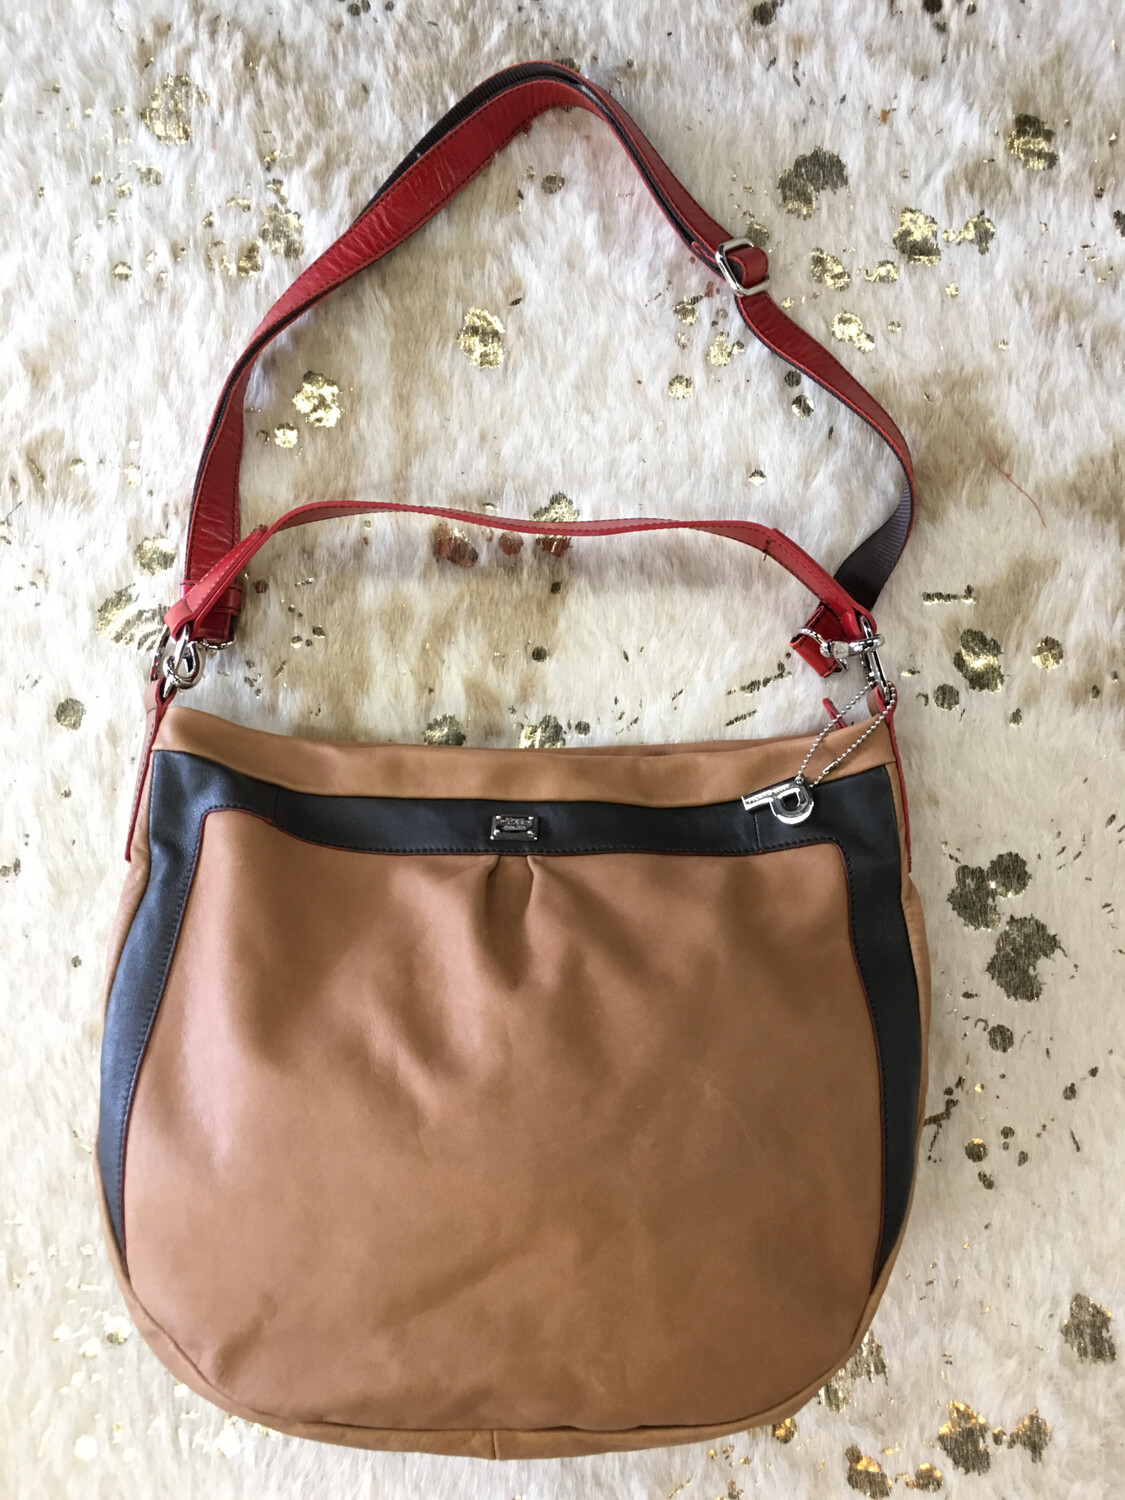 Picard Brown Handbag with Red Strap